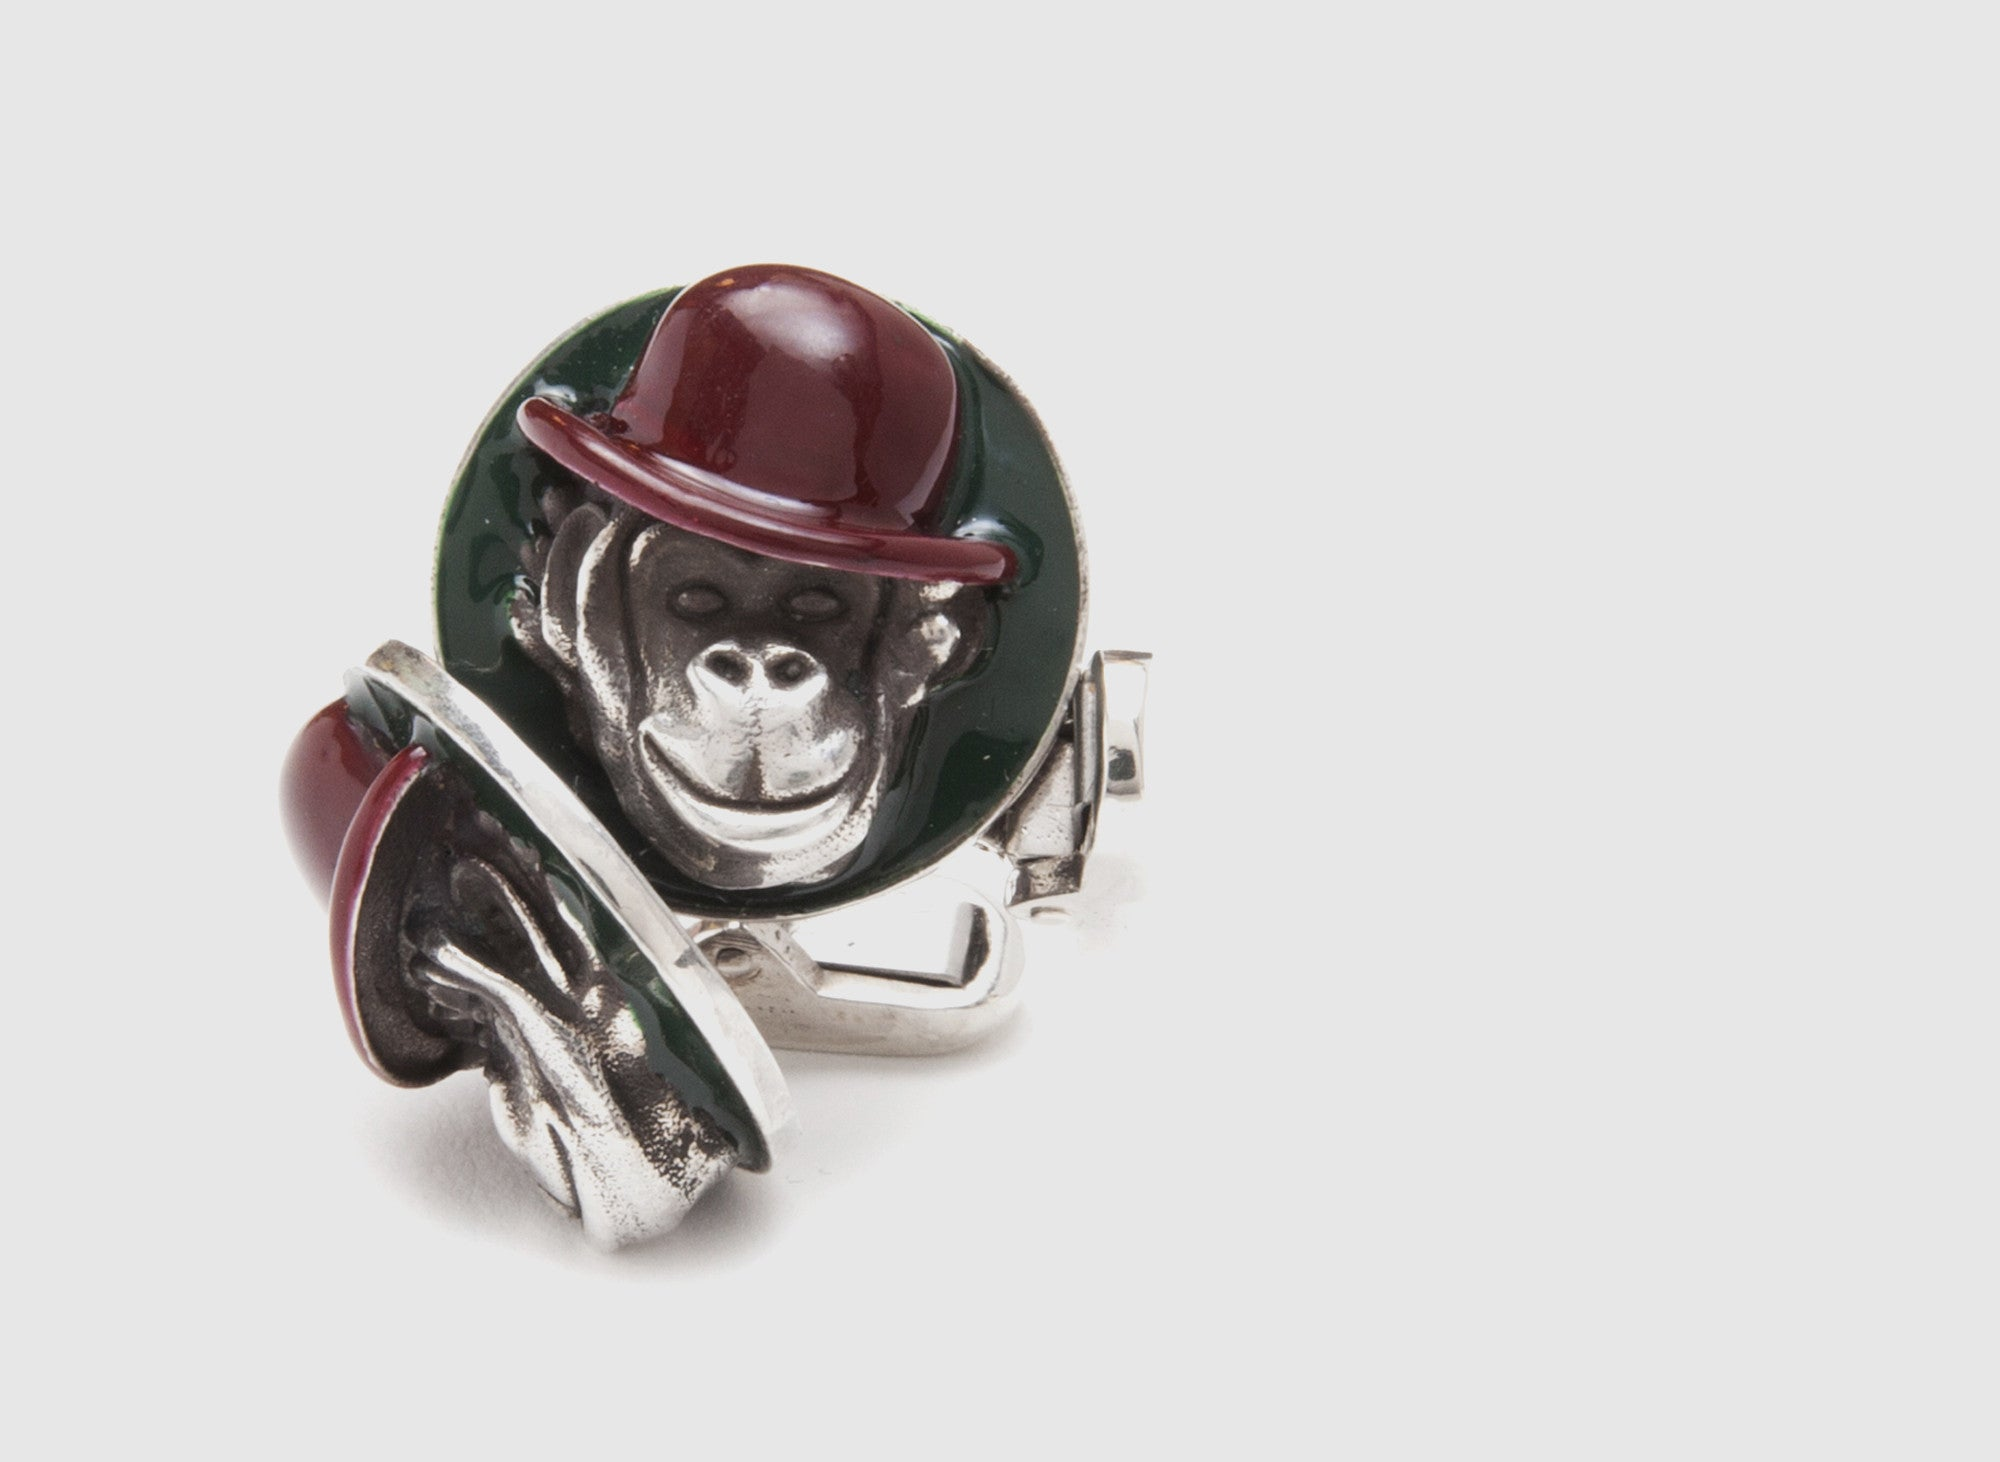 ENAMEL MONKEY HEAD CUFF LINKS